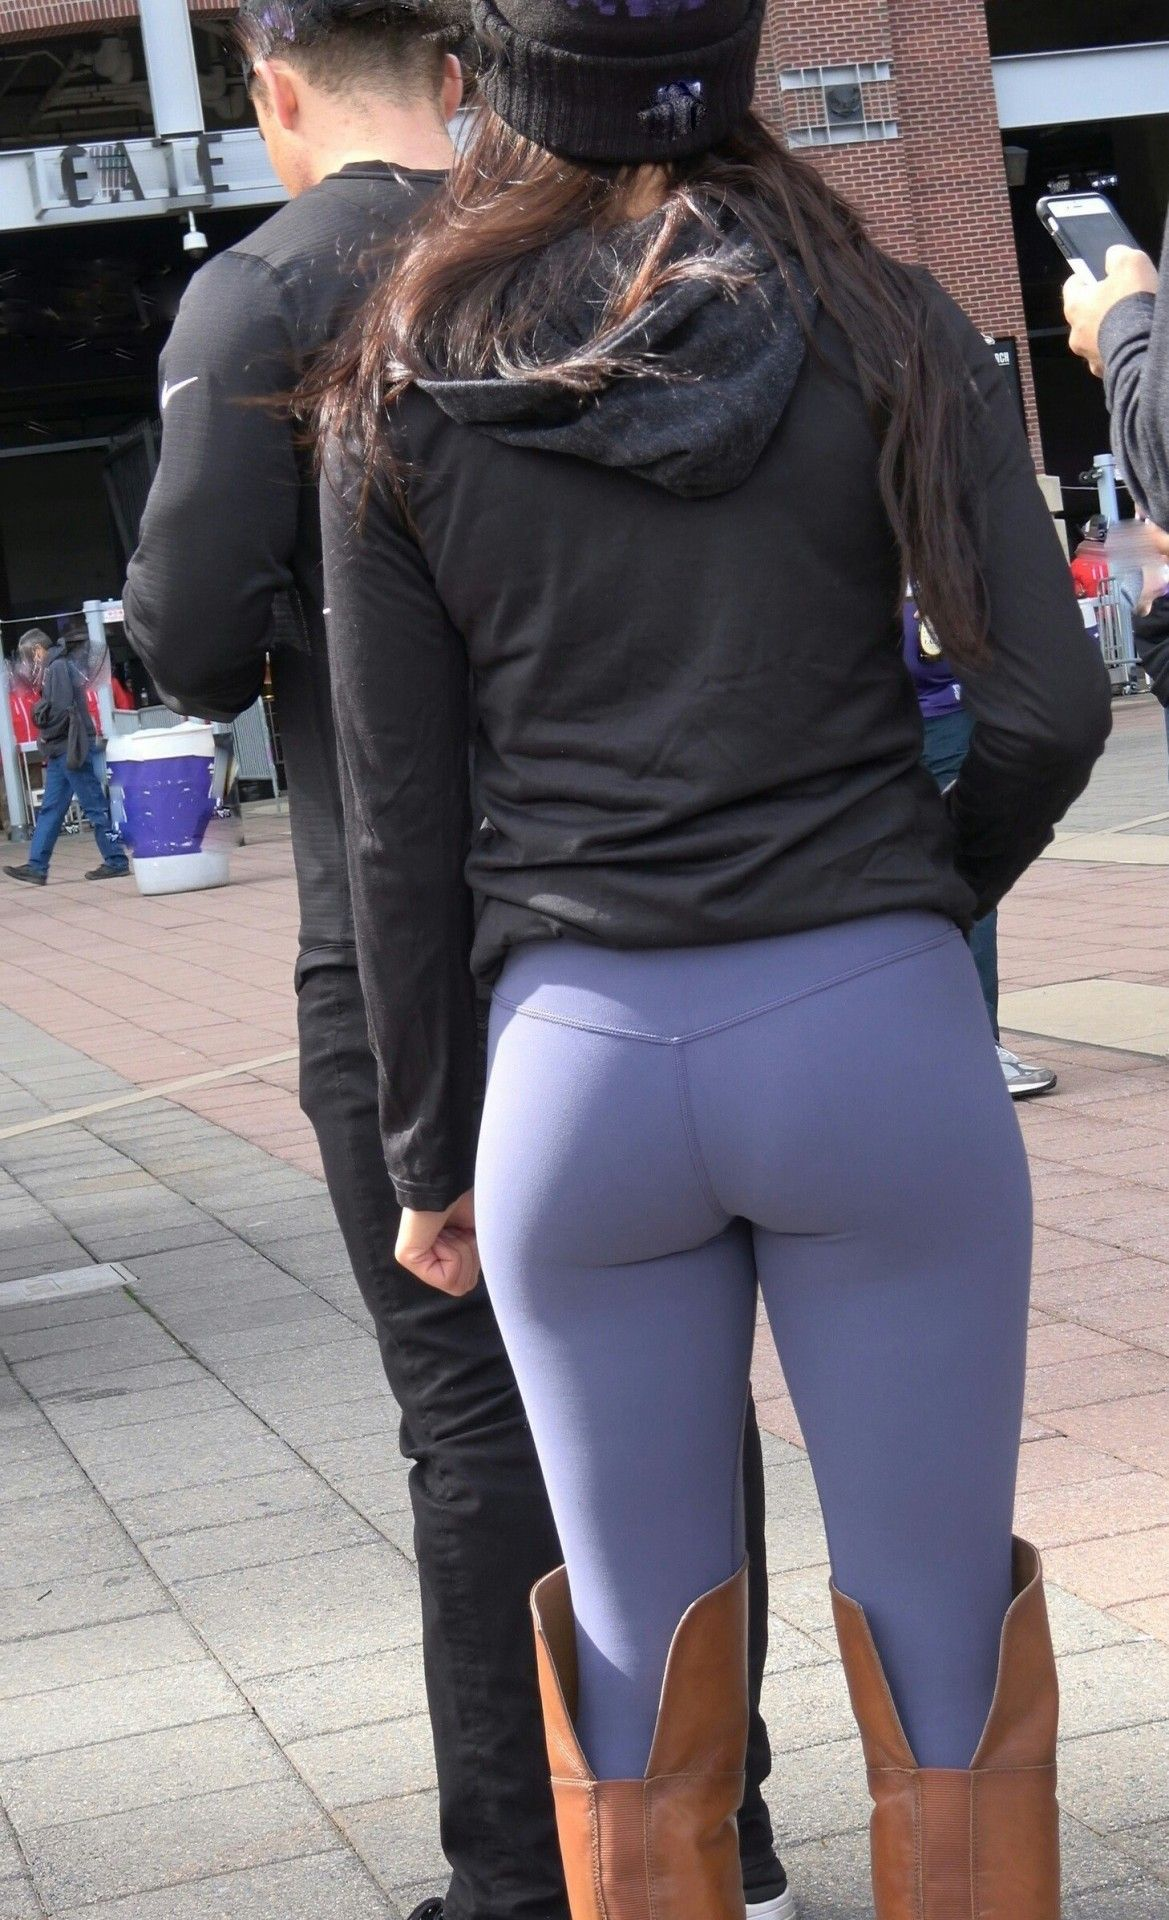 Candid Babe Wearing Tight Blue Leggings With Over The Knee Boots Candid Creepshots